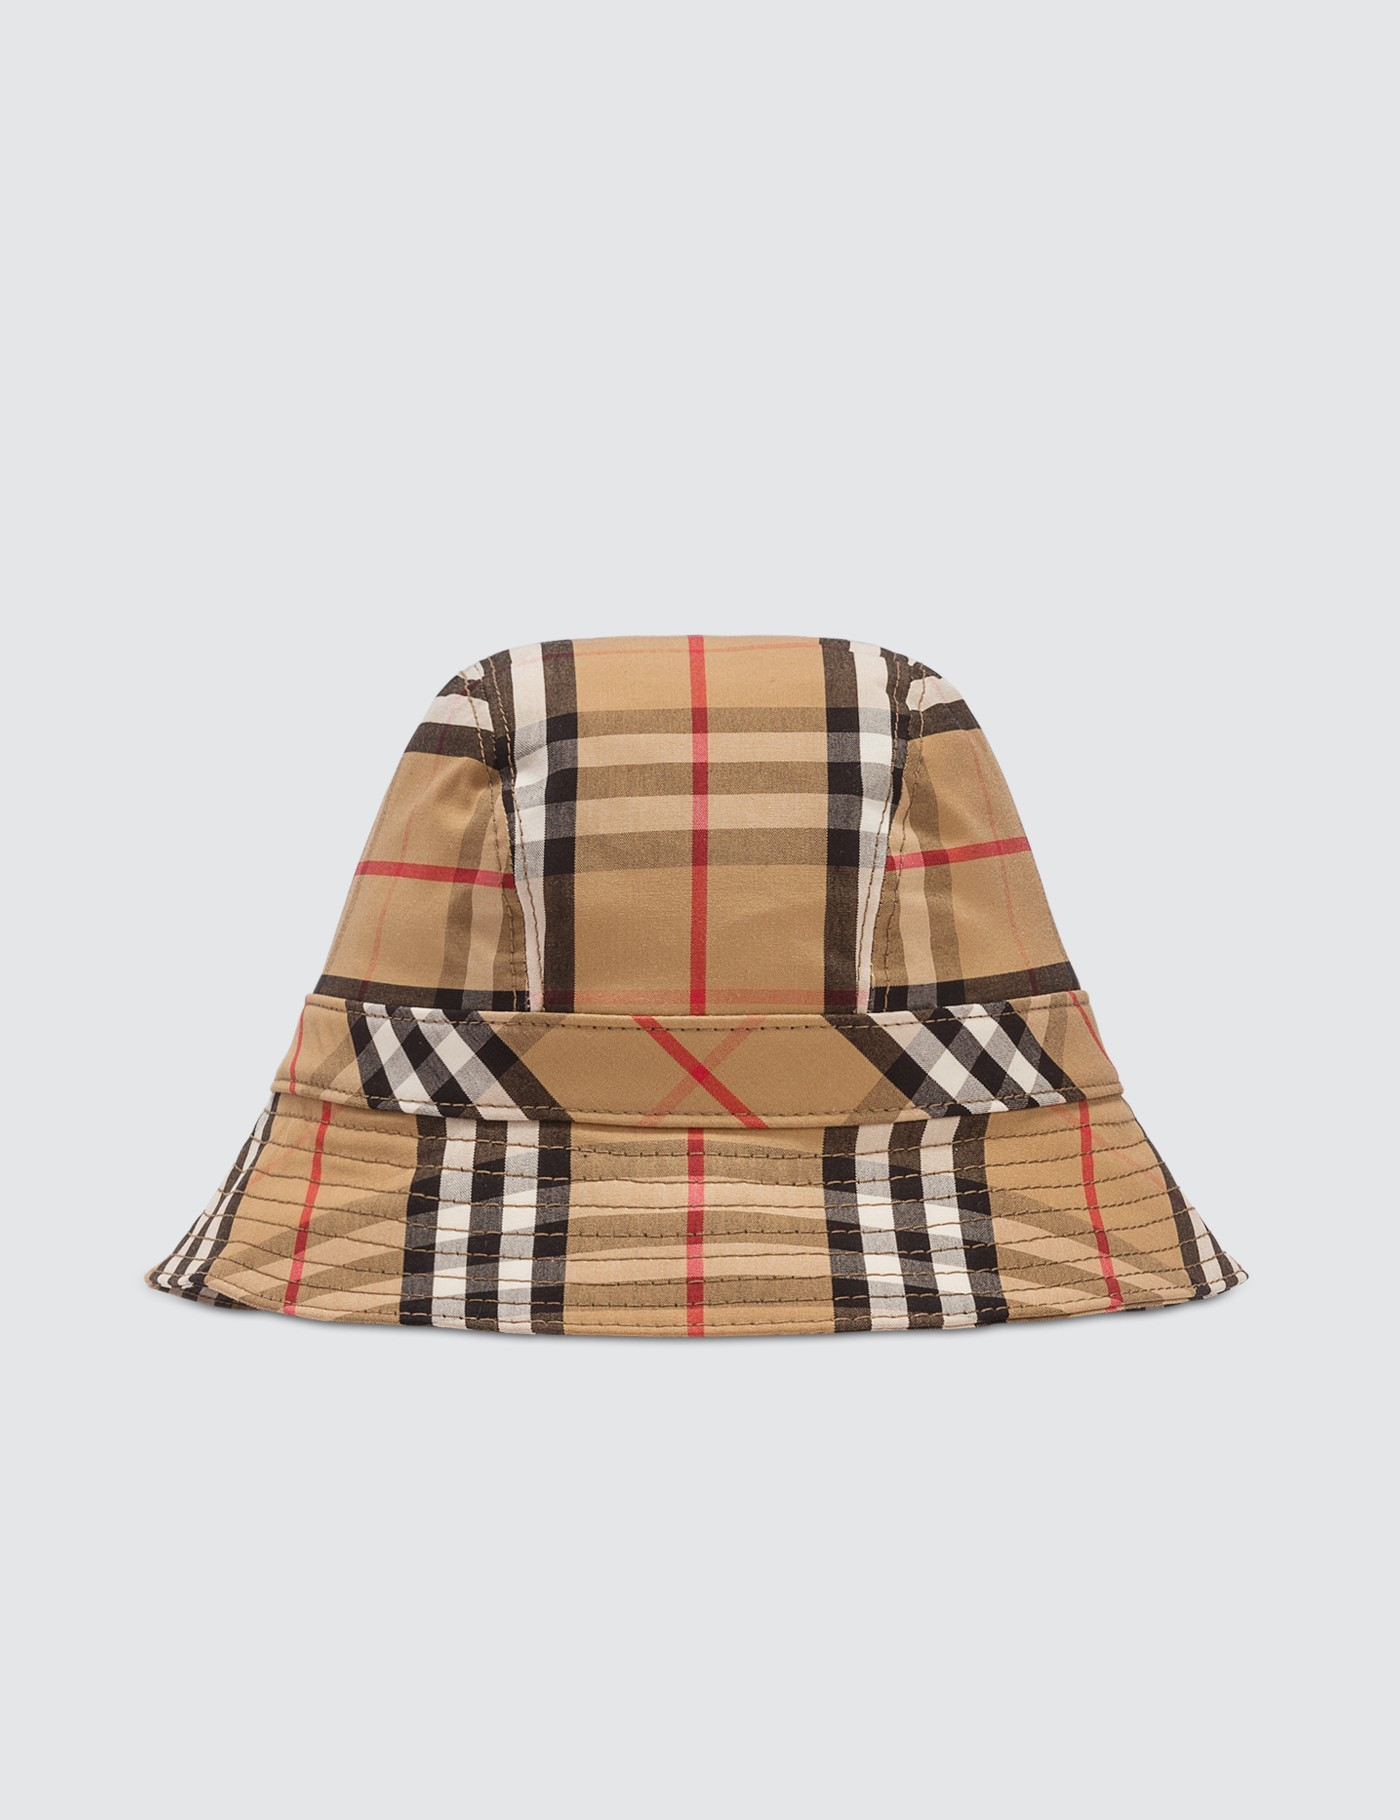 ed3218a3d32 Burberry Vintage Check Bucket Hat  Burberry Vintage Check Bucket Hat ...